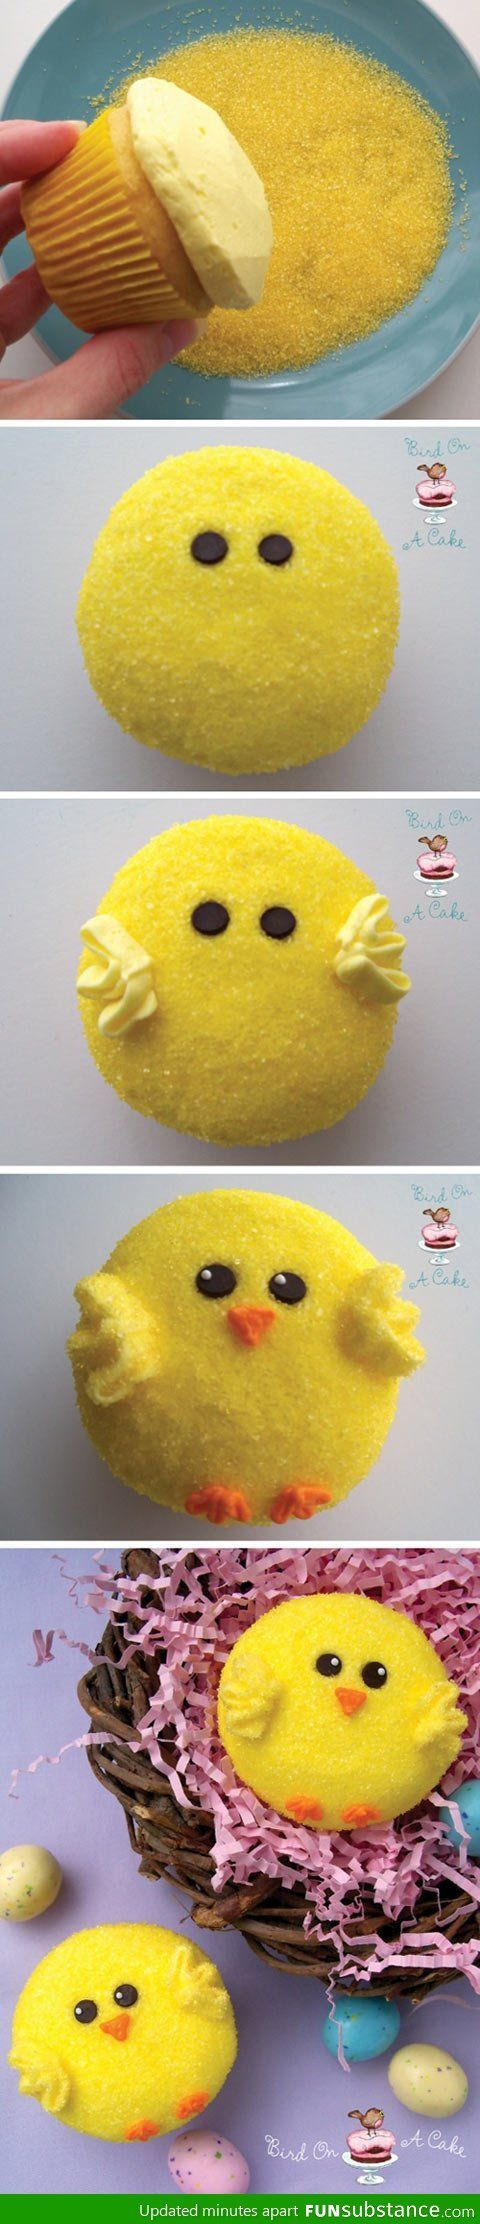 Easter Chick Cupcakes: